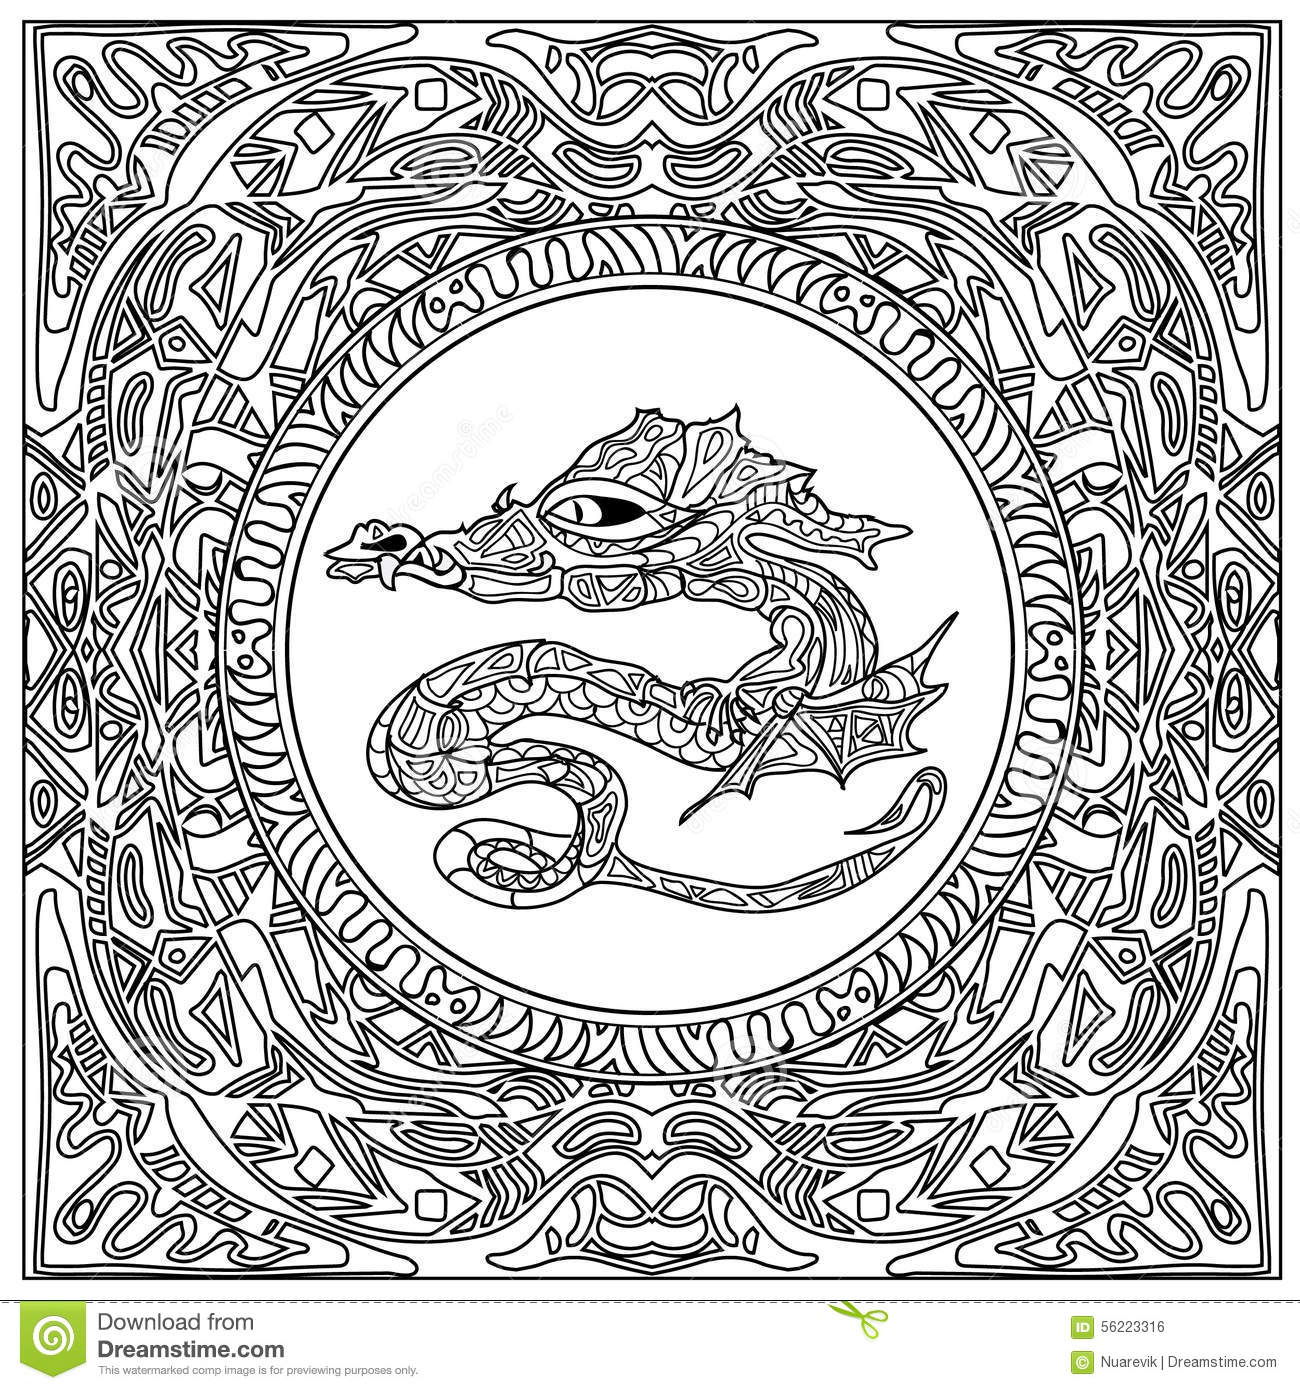 Dragon Coloring Zentangle Stock Illustration Image 56223316